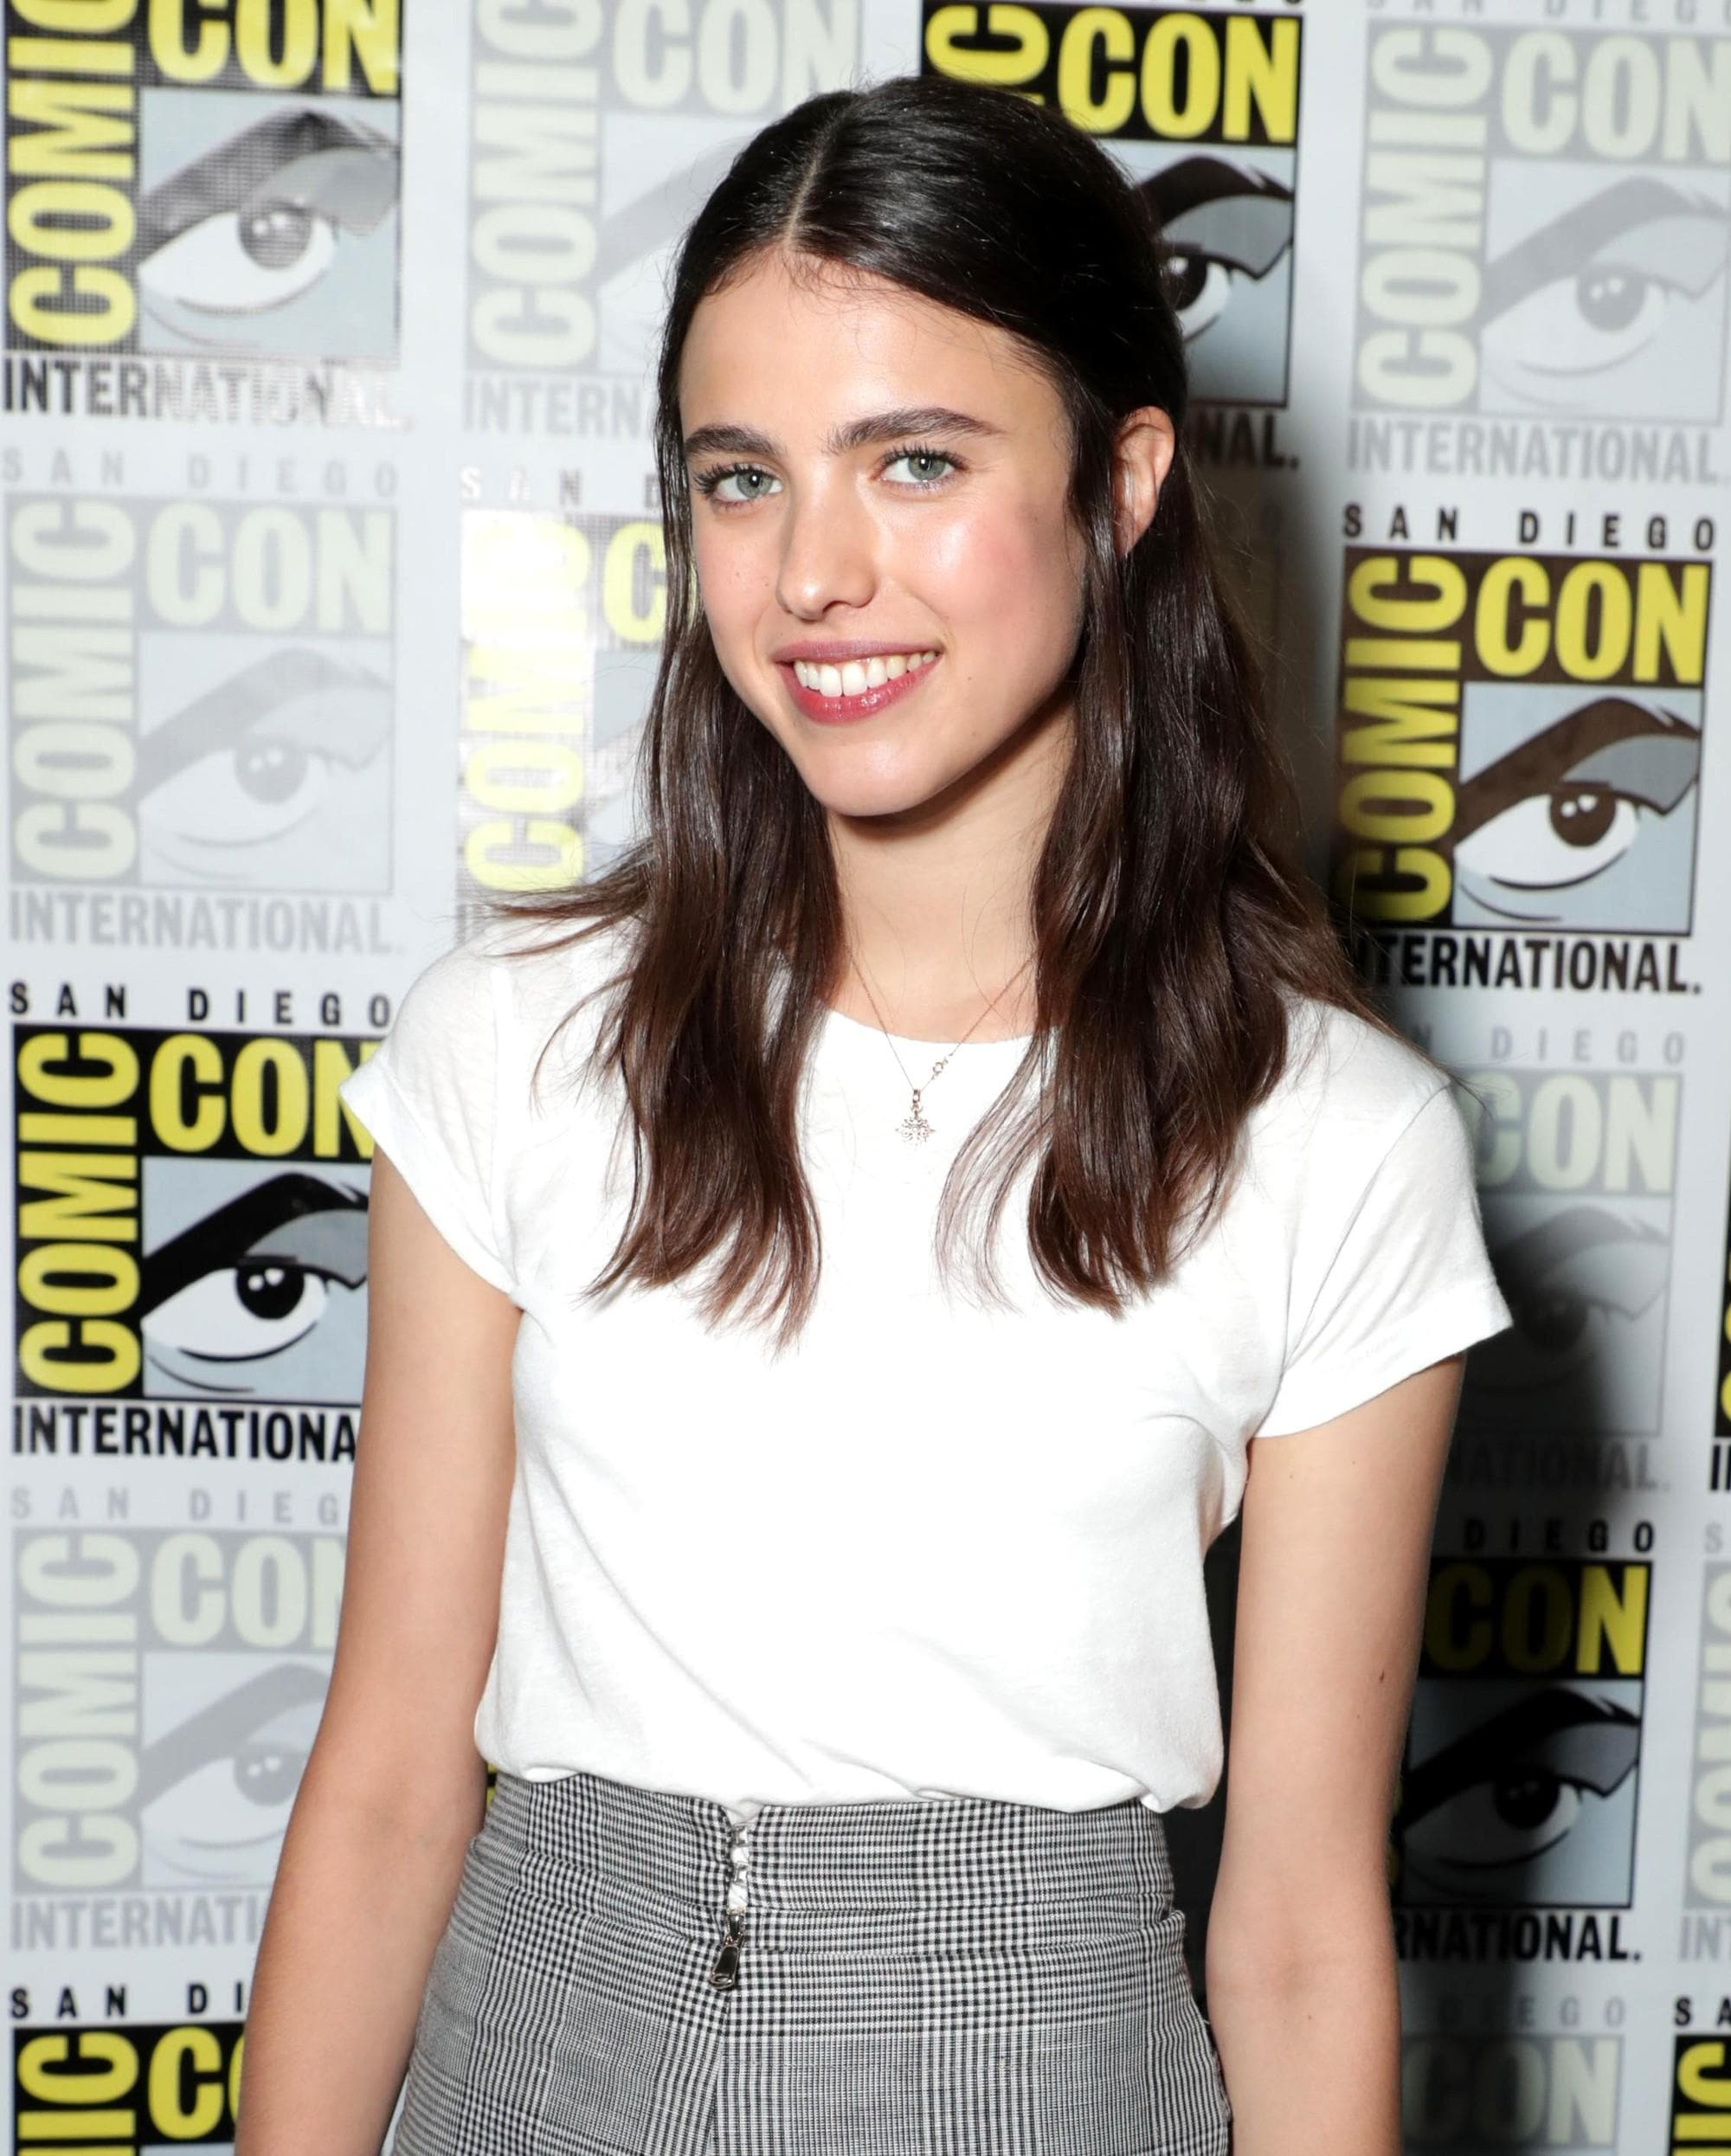 andy mcdowalls daughter actress margaret qualley at san diego comic con with her brunette hair in a half up half down style